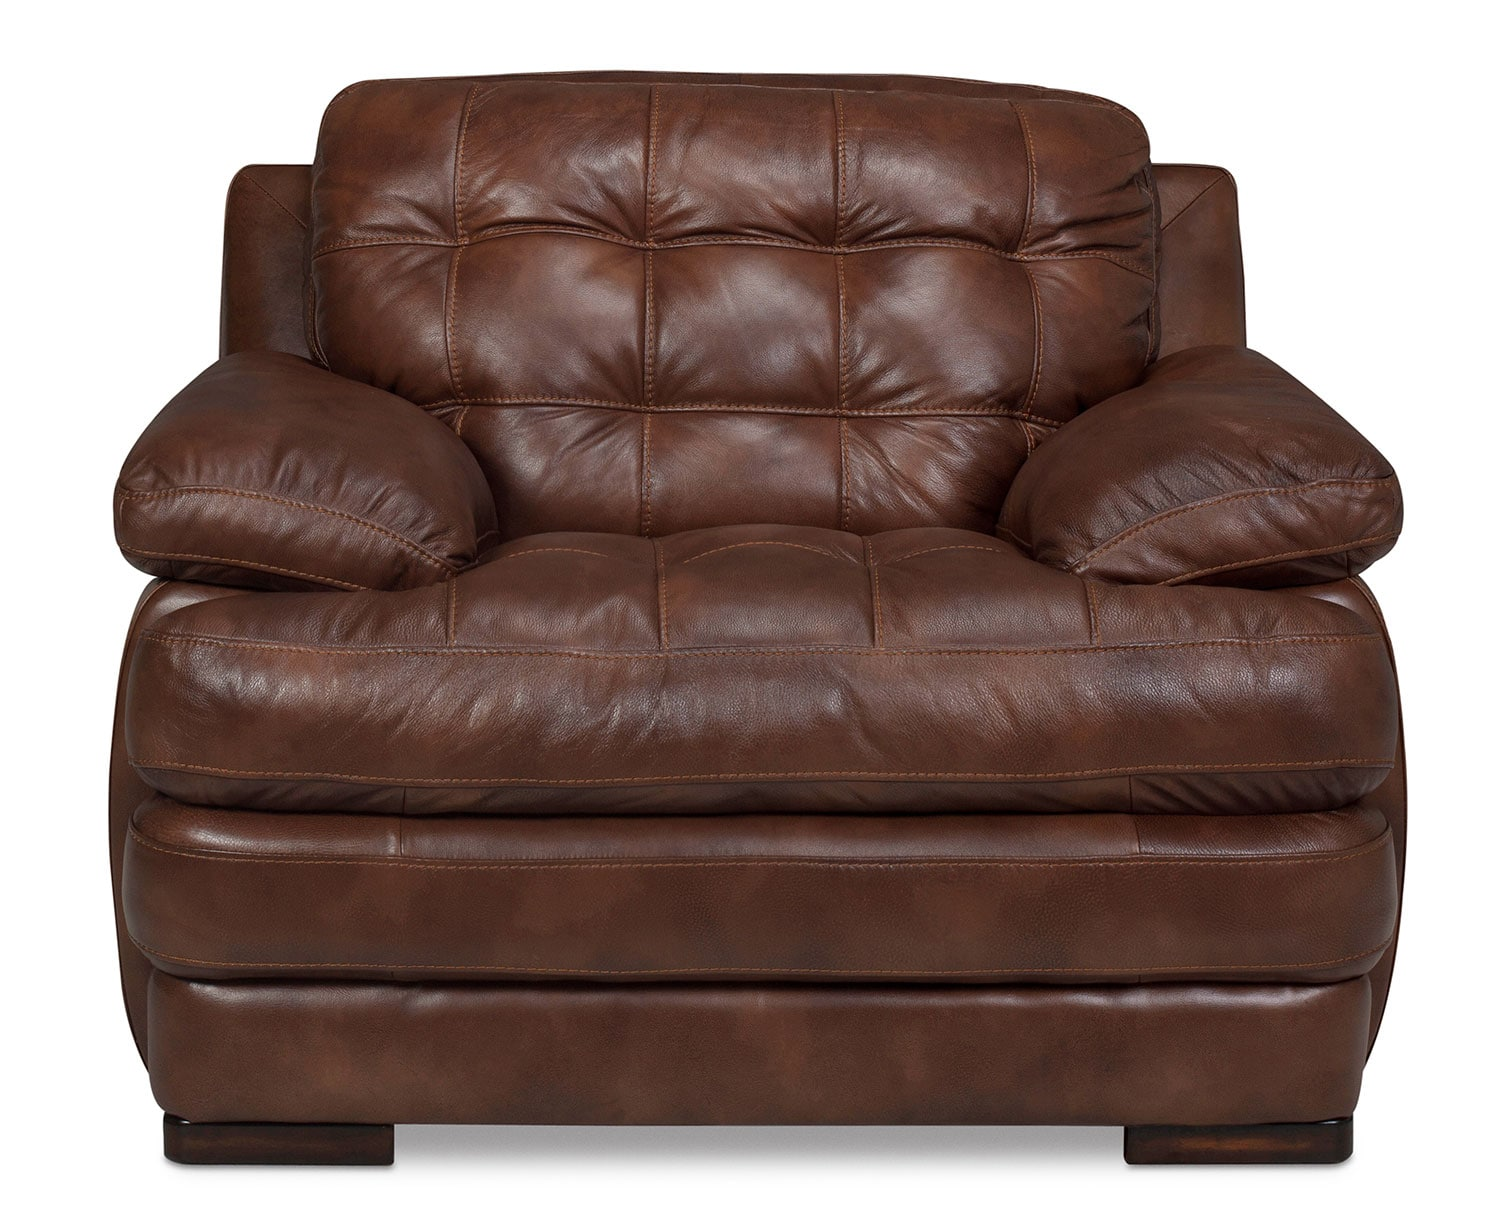 Ashton Chair - Brown